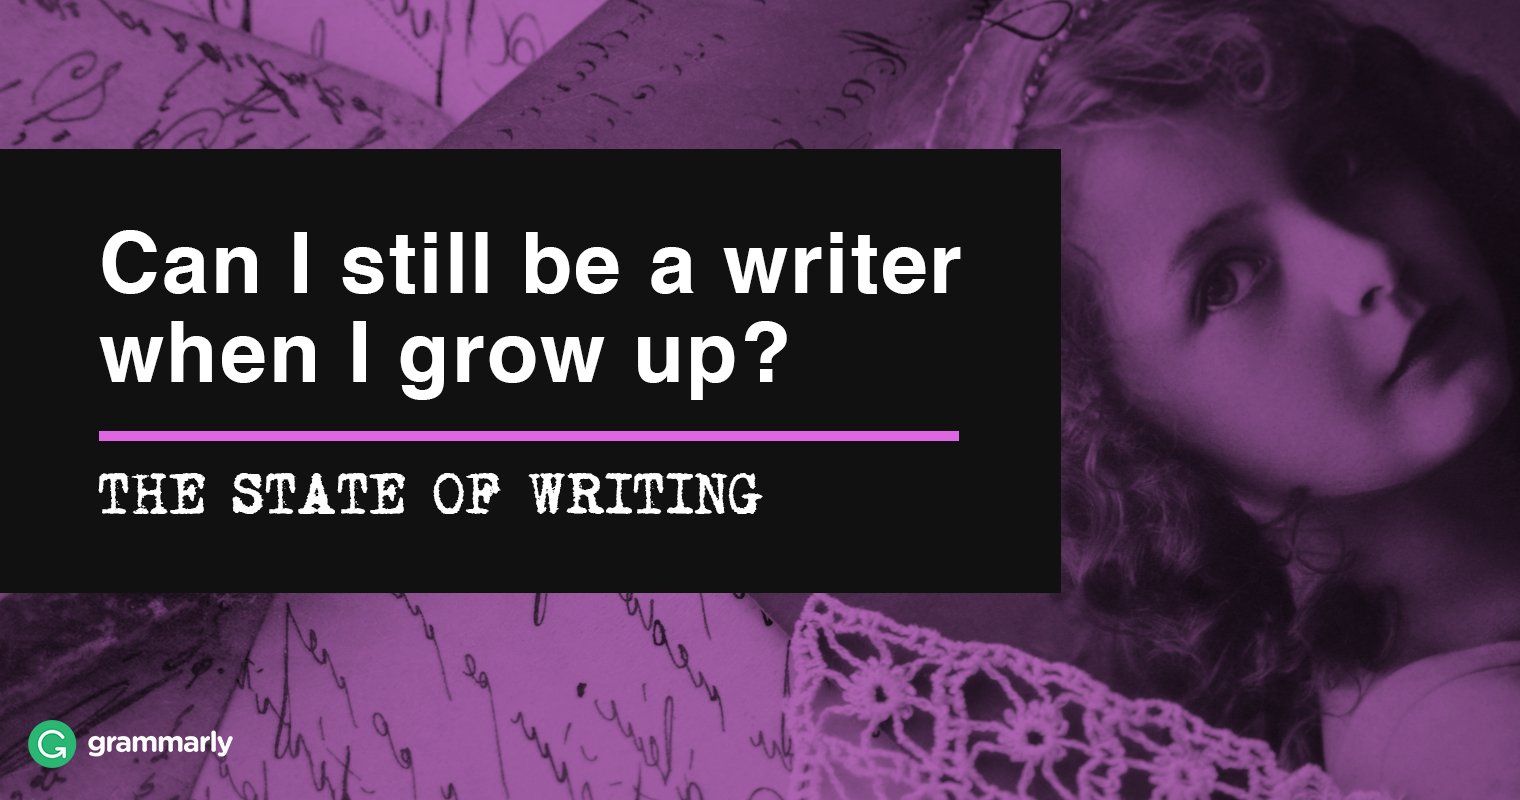 Can I still be a writer when I grow up?